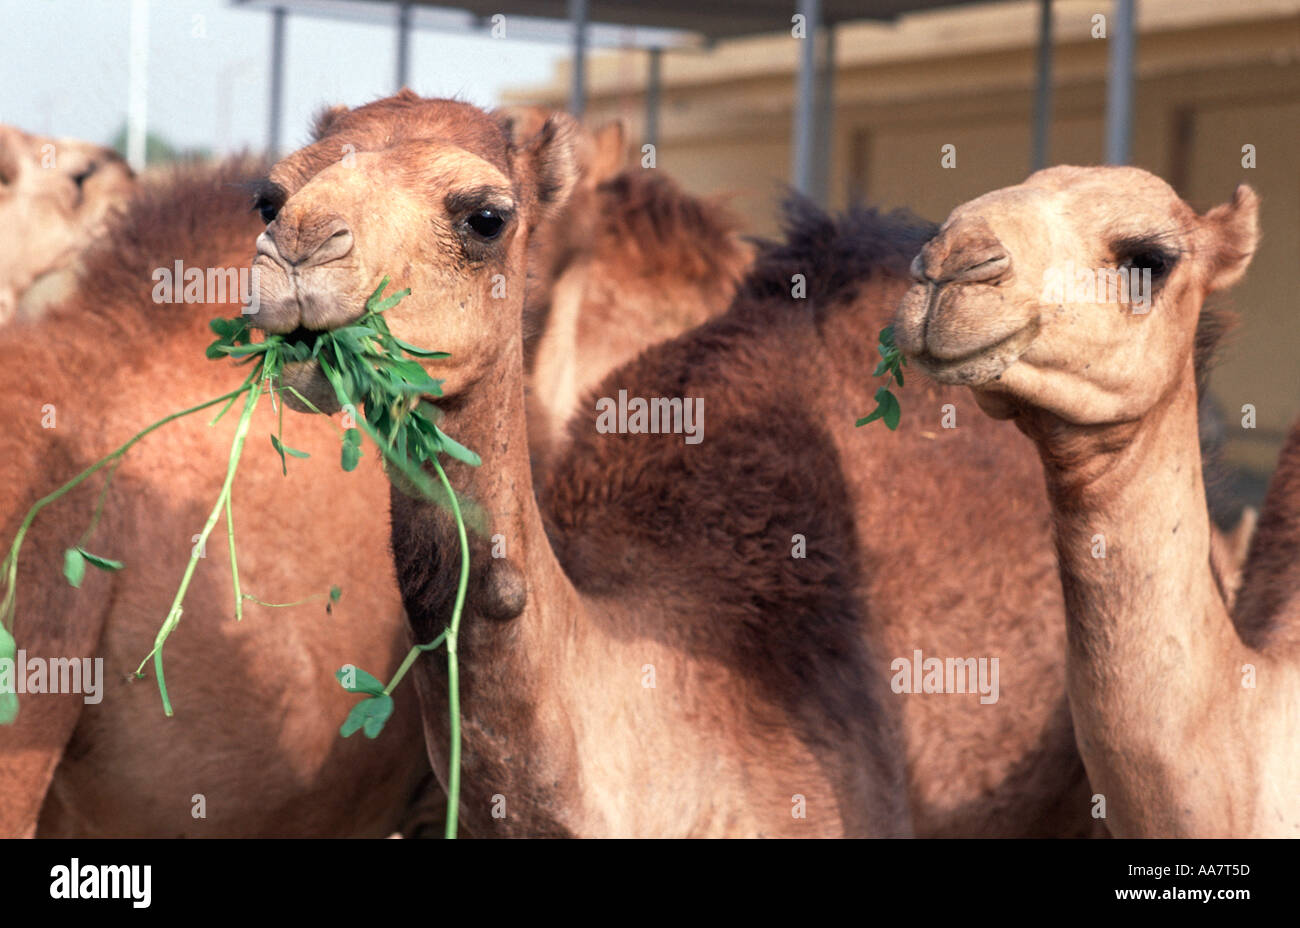 Camels chewing greens at El Hebel camel market near Luxor Egypt - Stock Image